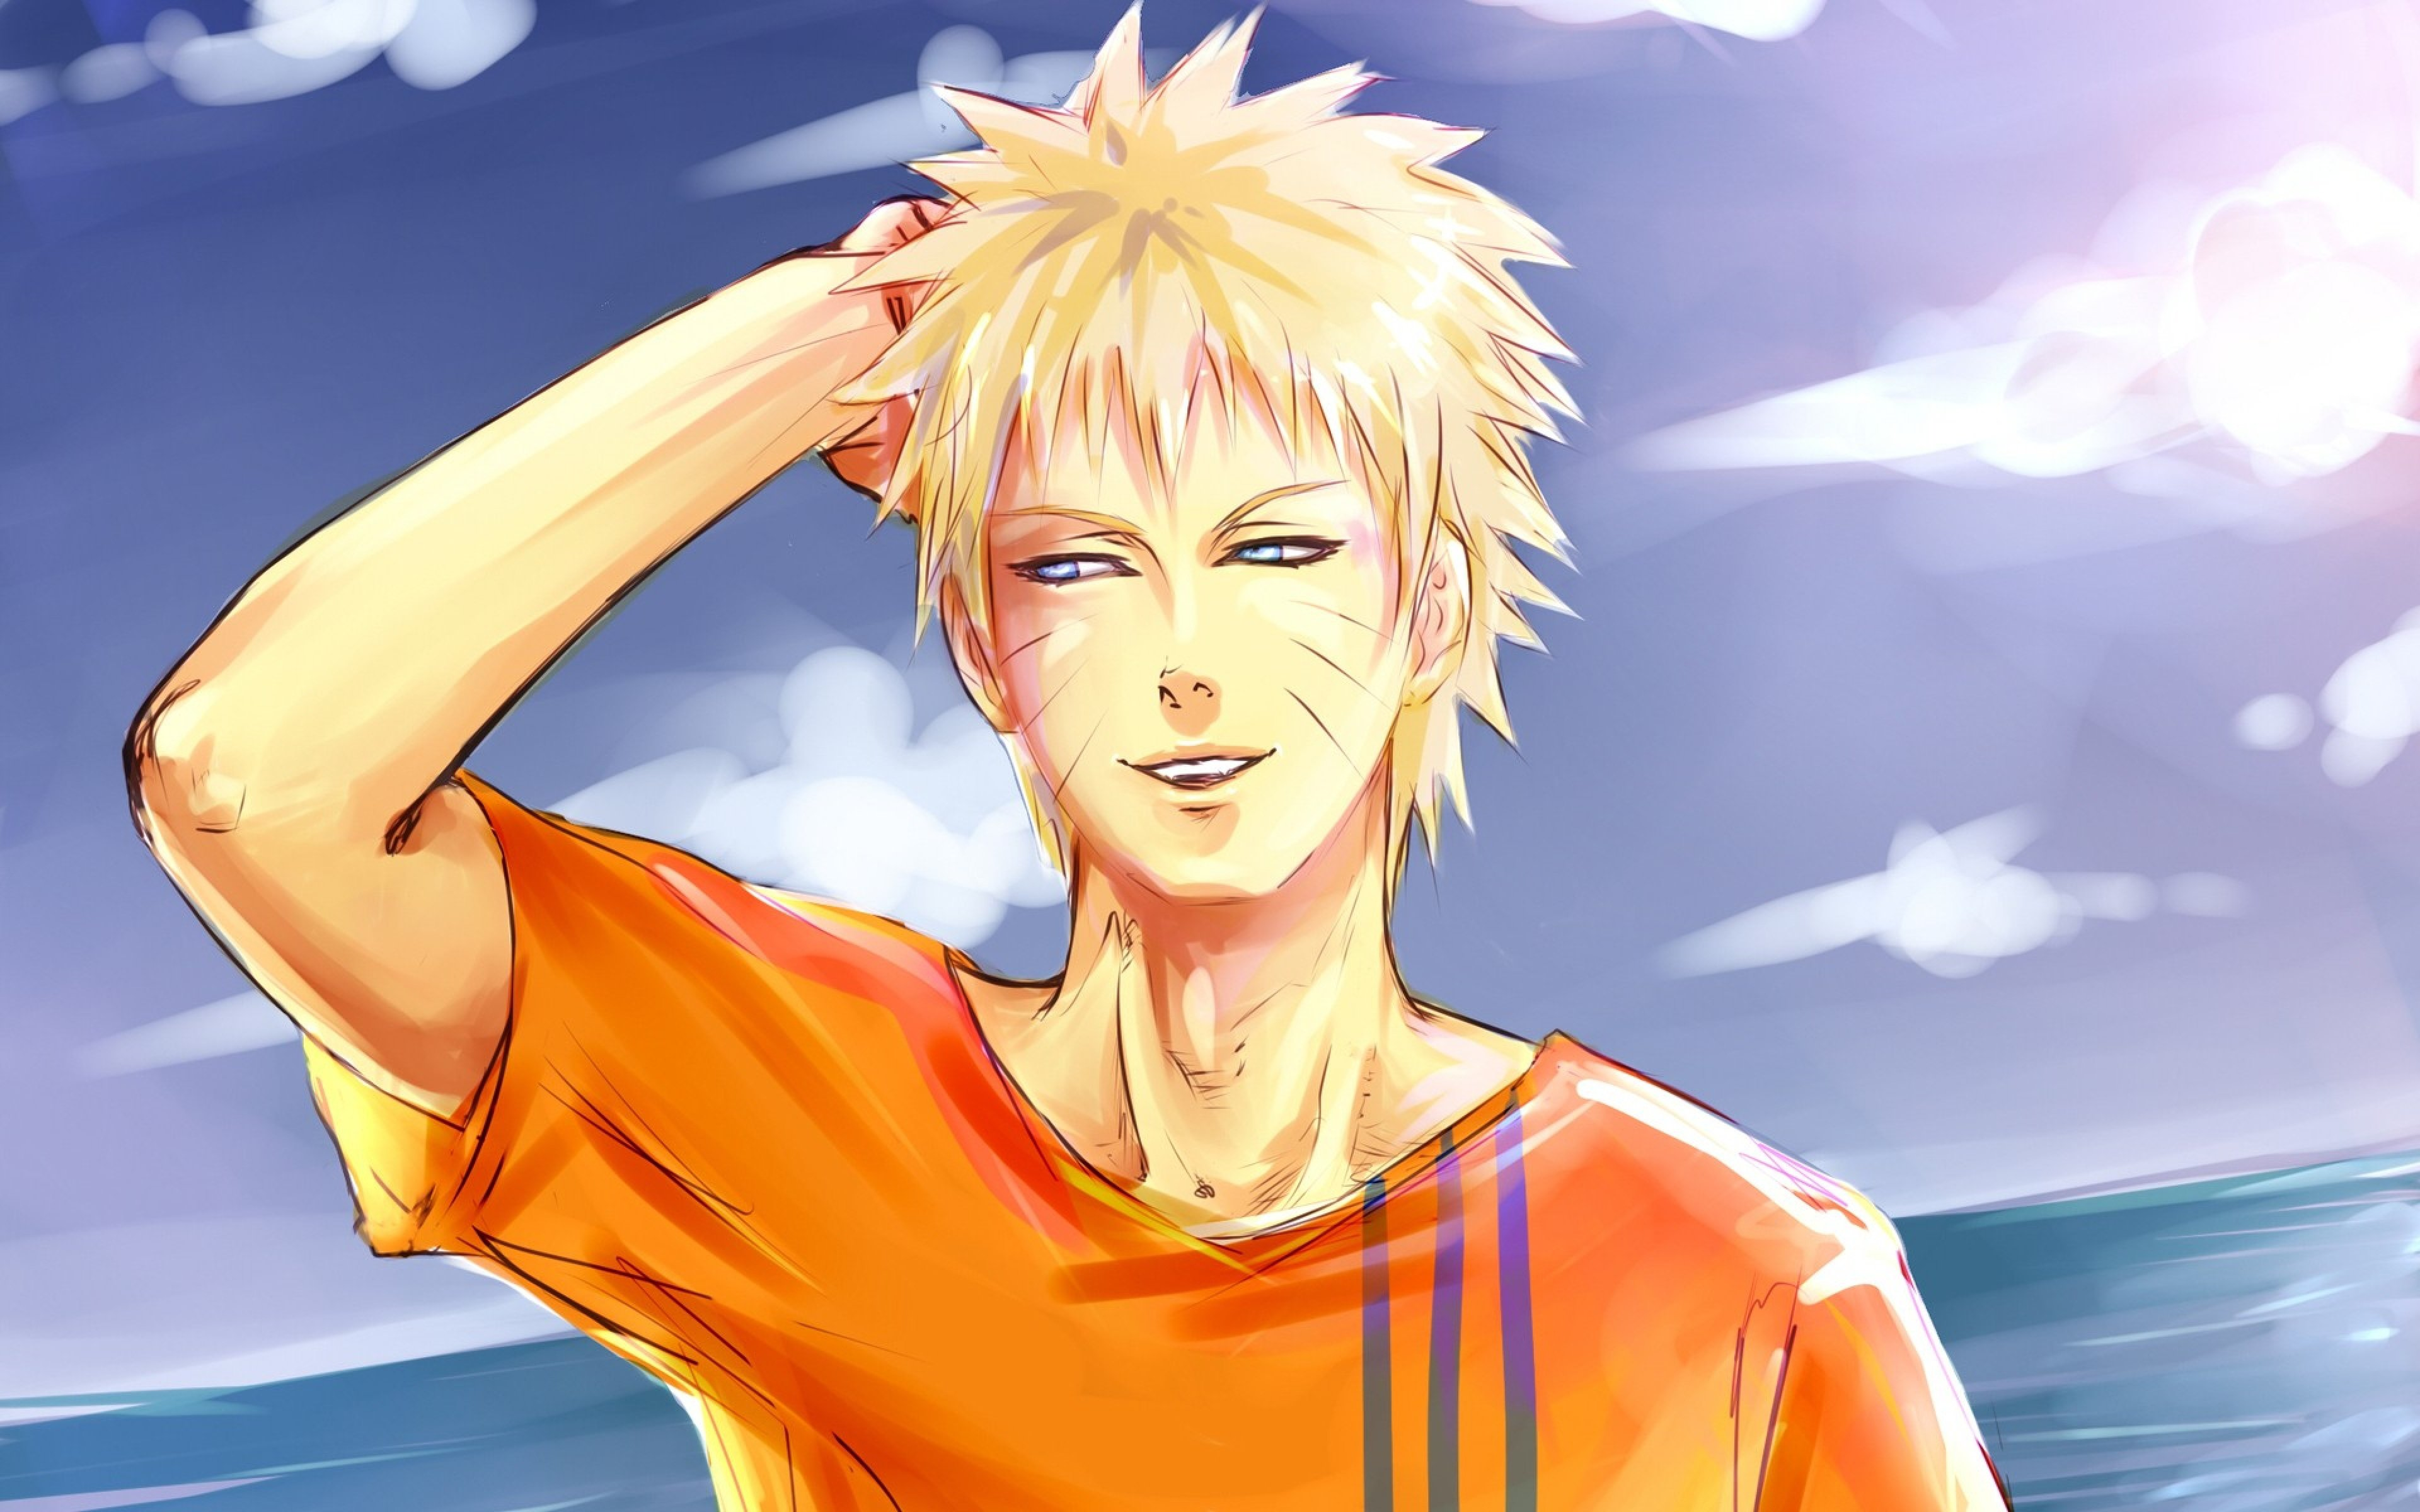 Download Wallpaper 3840x2400 naruto shippuuden naruto boy shirt 3840x2400